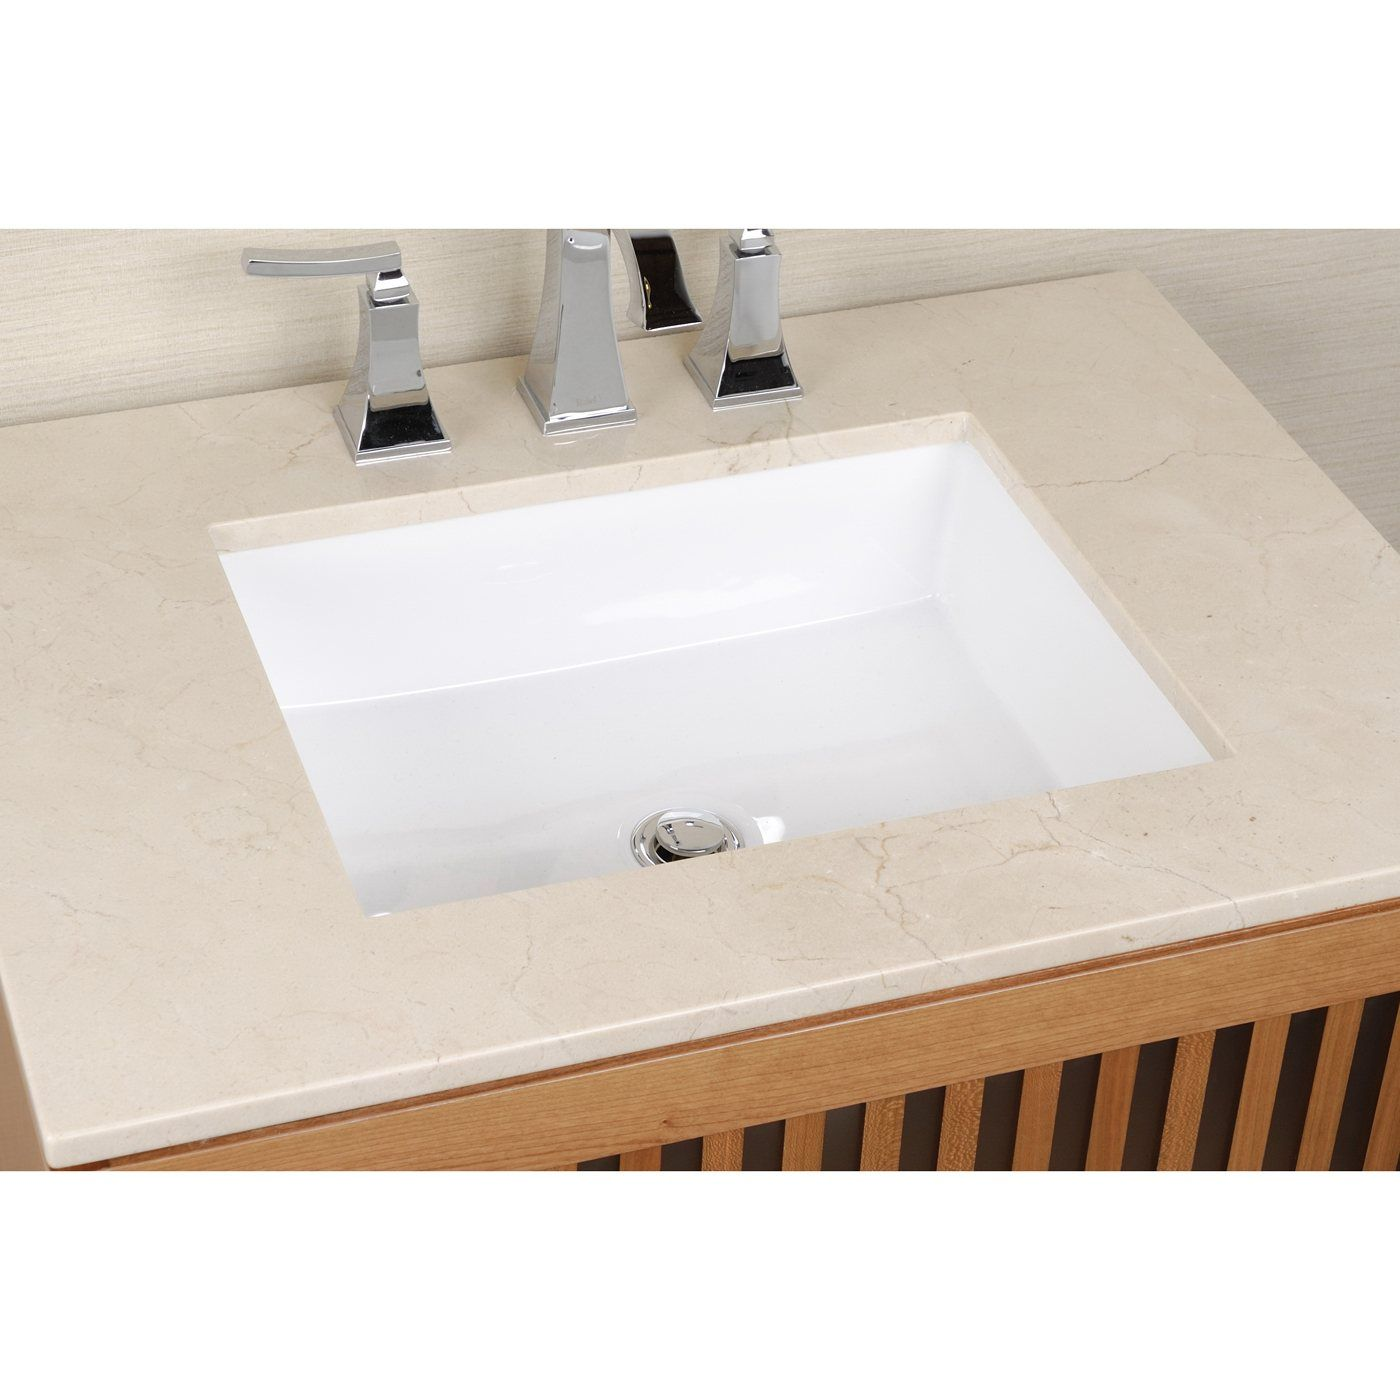 Cantrio Koncepts Ps 101 Undermount Ceramic Sink Lowe S Canada